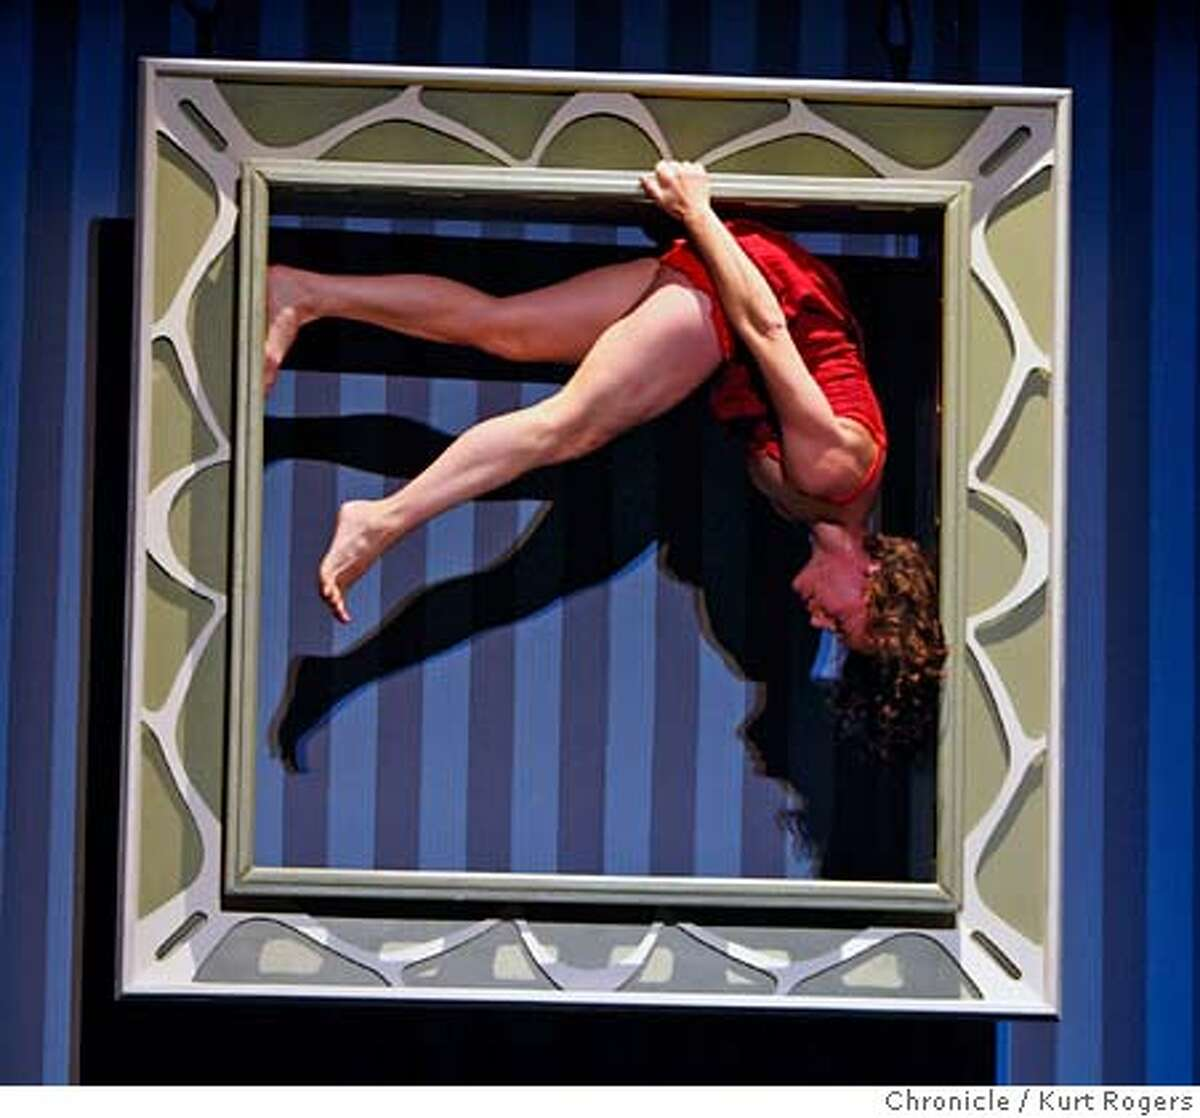 ###Live Caption:Amelia Rudolph in the Rehearsal of The Dance of the Vertical Bandaloop which opens at the Cowell theater in Fort Mason on April 17th. On Thursday April 17, 2008 in San Francisco, Calif Photo By Kurt Rogers / San Francisco Chronicle###Caption History:Amelia Rudolph in the Rehearsal of The Dance of the Vertical Bandaloop which opens at the Cowell theater in Fort Mason on April 17th. On Thursday April 17, 2008 in San Francisco, Calif Photo By Kurt Rogers / San Francisco Chronicle###Notes:Dane of the Vertical at the Cowell theater in Fort Mason###Special Instructions:MANDATORY CREDIT FOR PHOTOG AND SAN FRANCISCO CHRONICLE/NO SALES-MAGS OUT